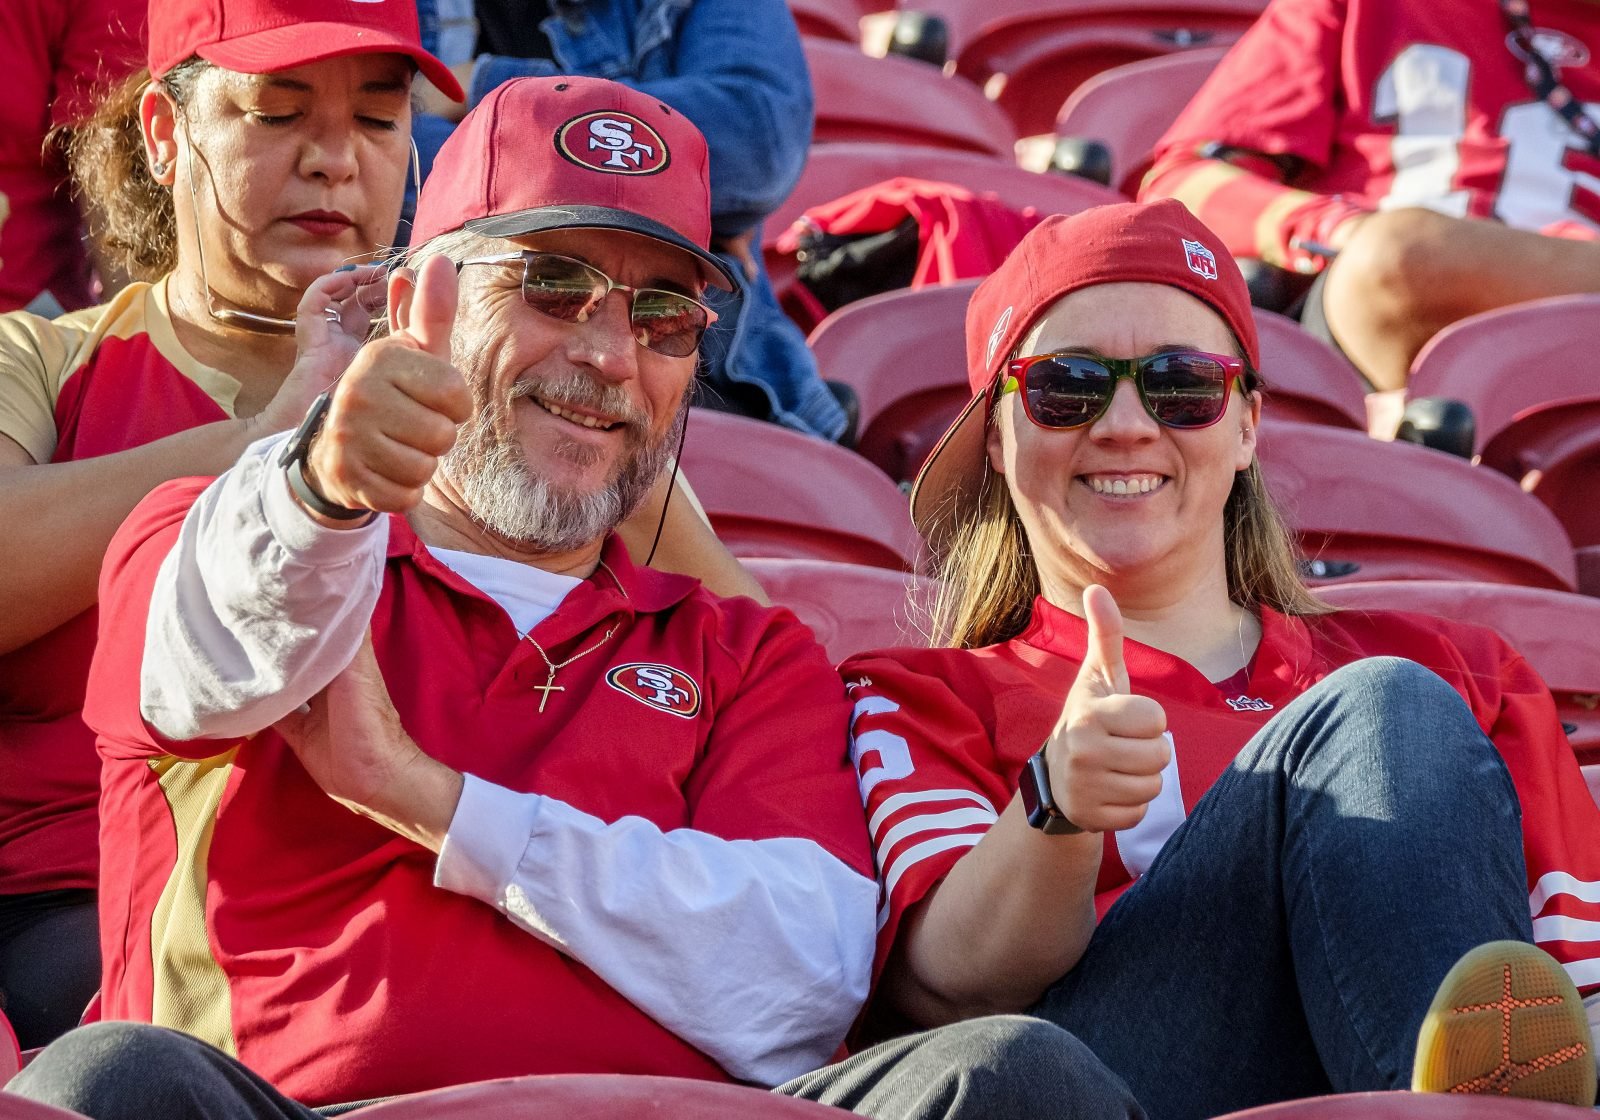 49ers season ticket holders will get unlimited food and beverages next season